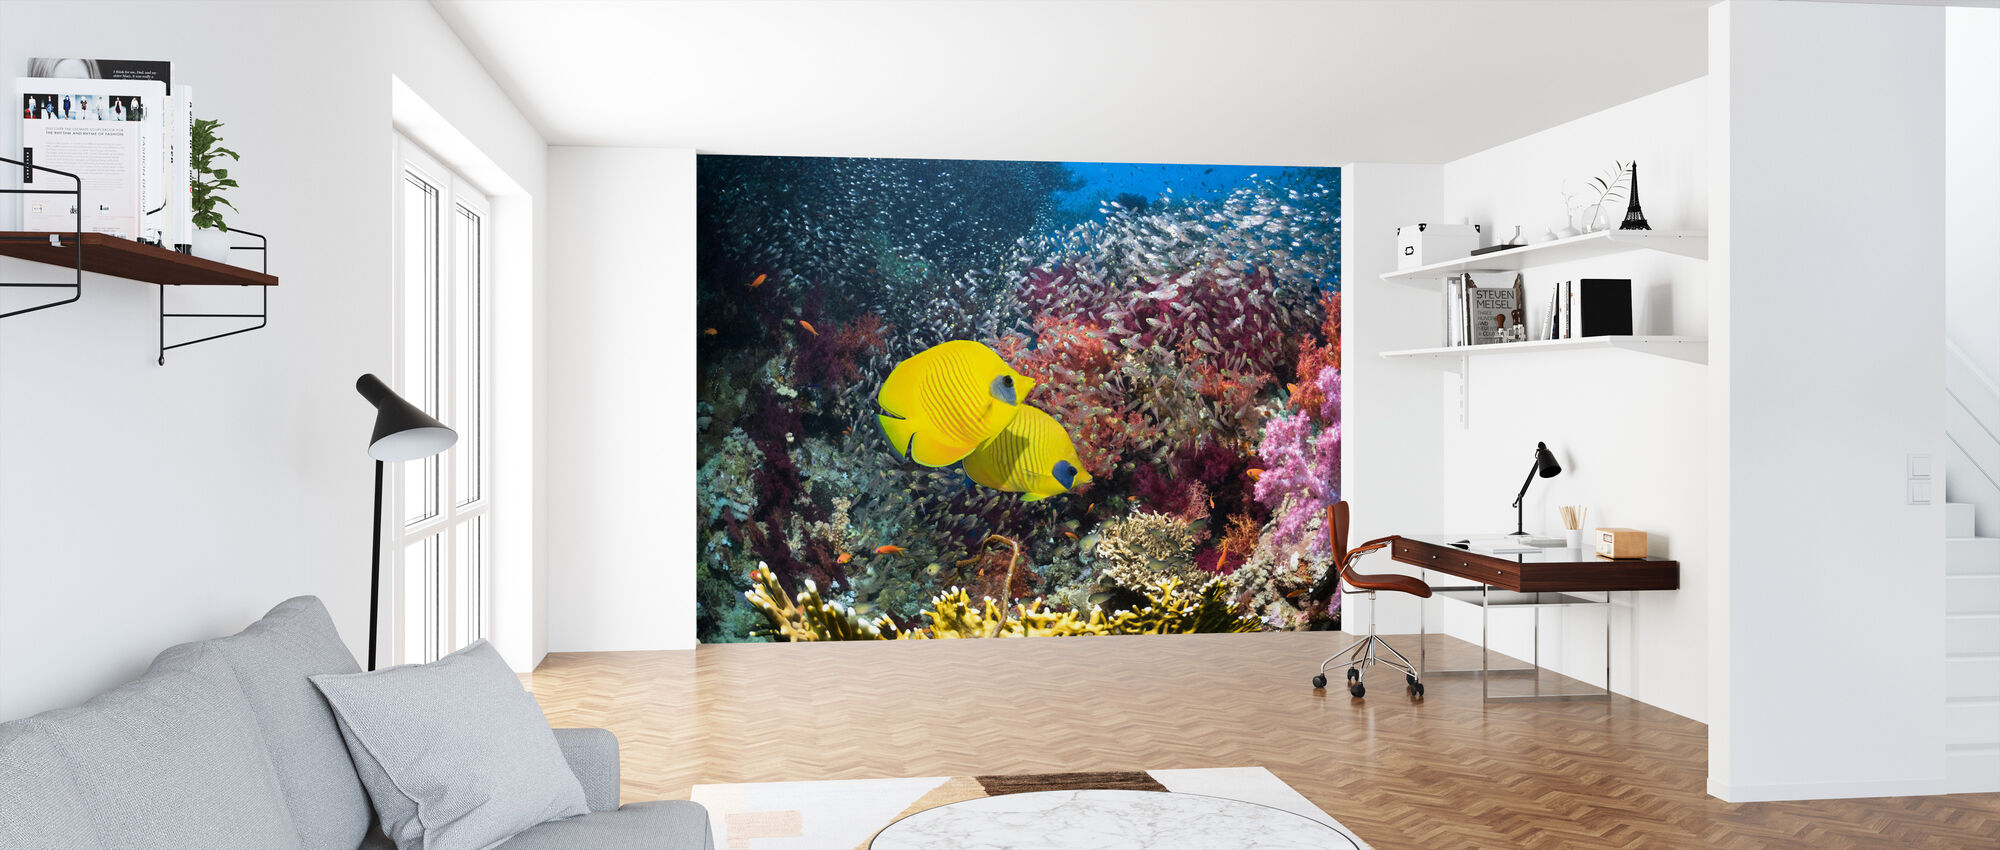 Coral Reef Scenery - Wallpaper - Office